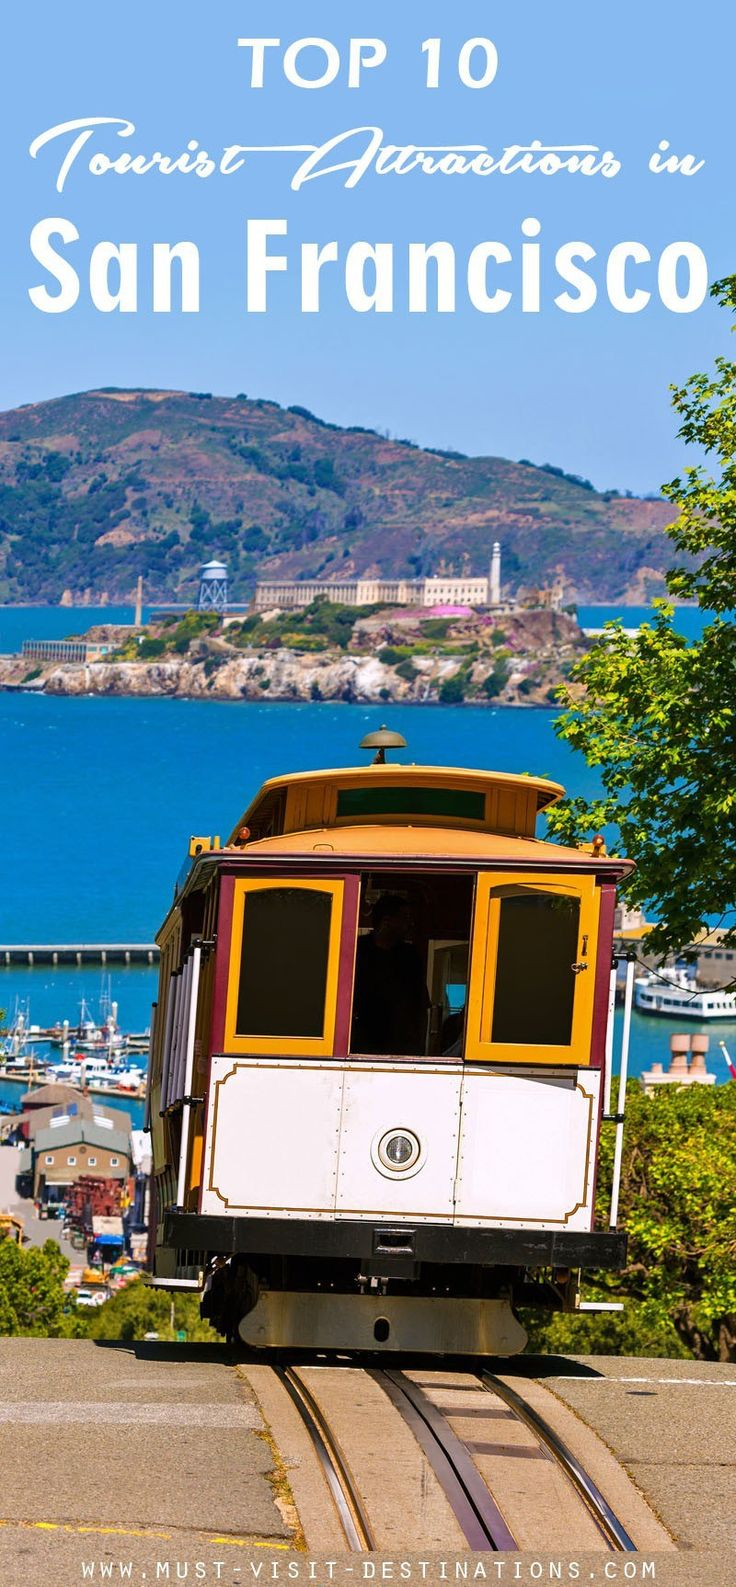 Best San Francisco Tourist Spots Ideas On Pinterest In San - 10 family friendly activities in san francisco